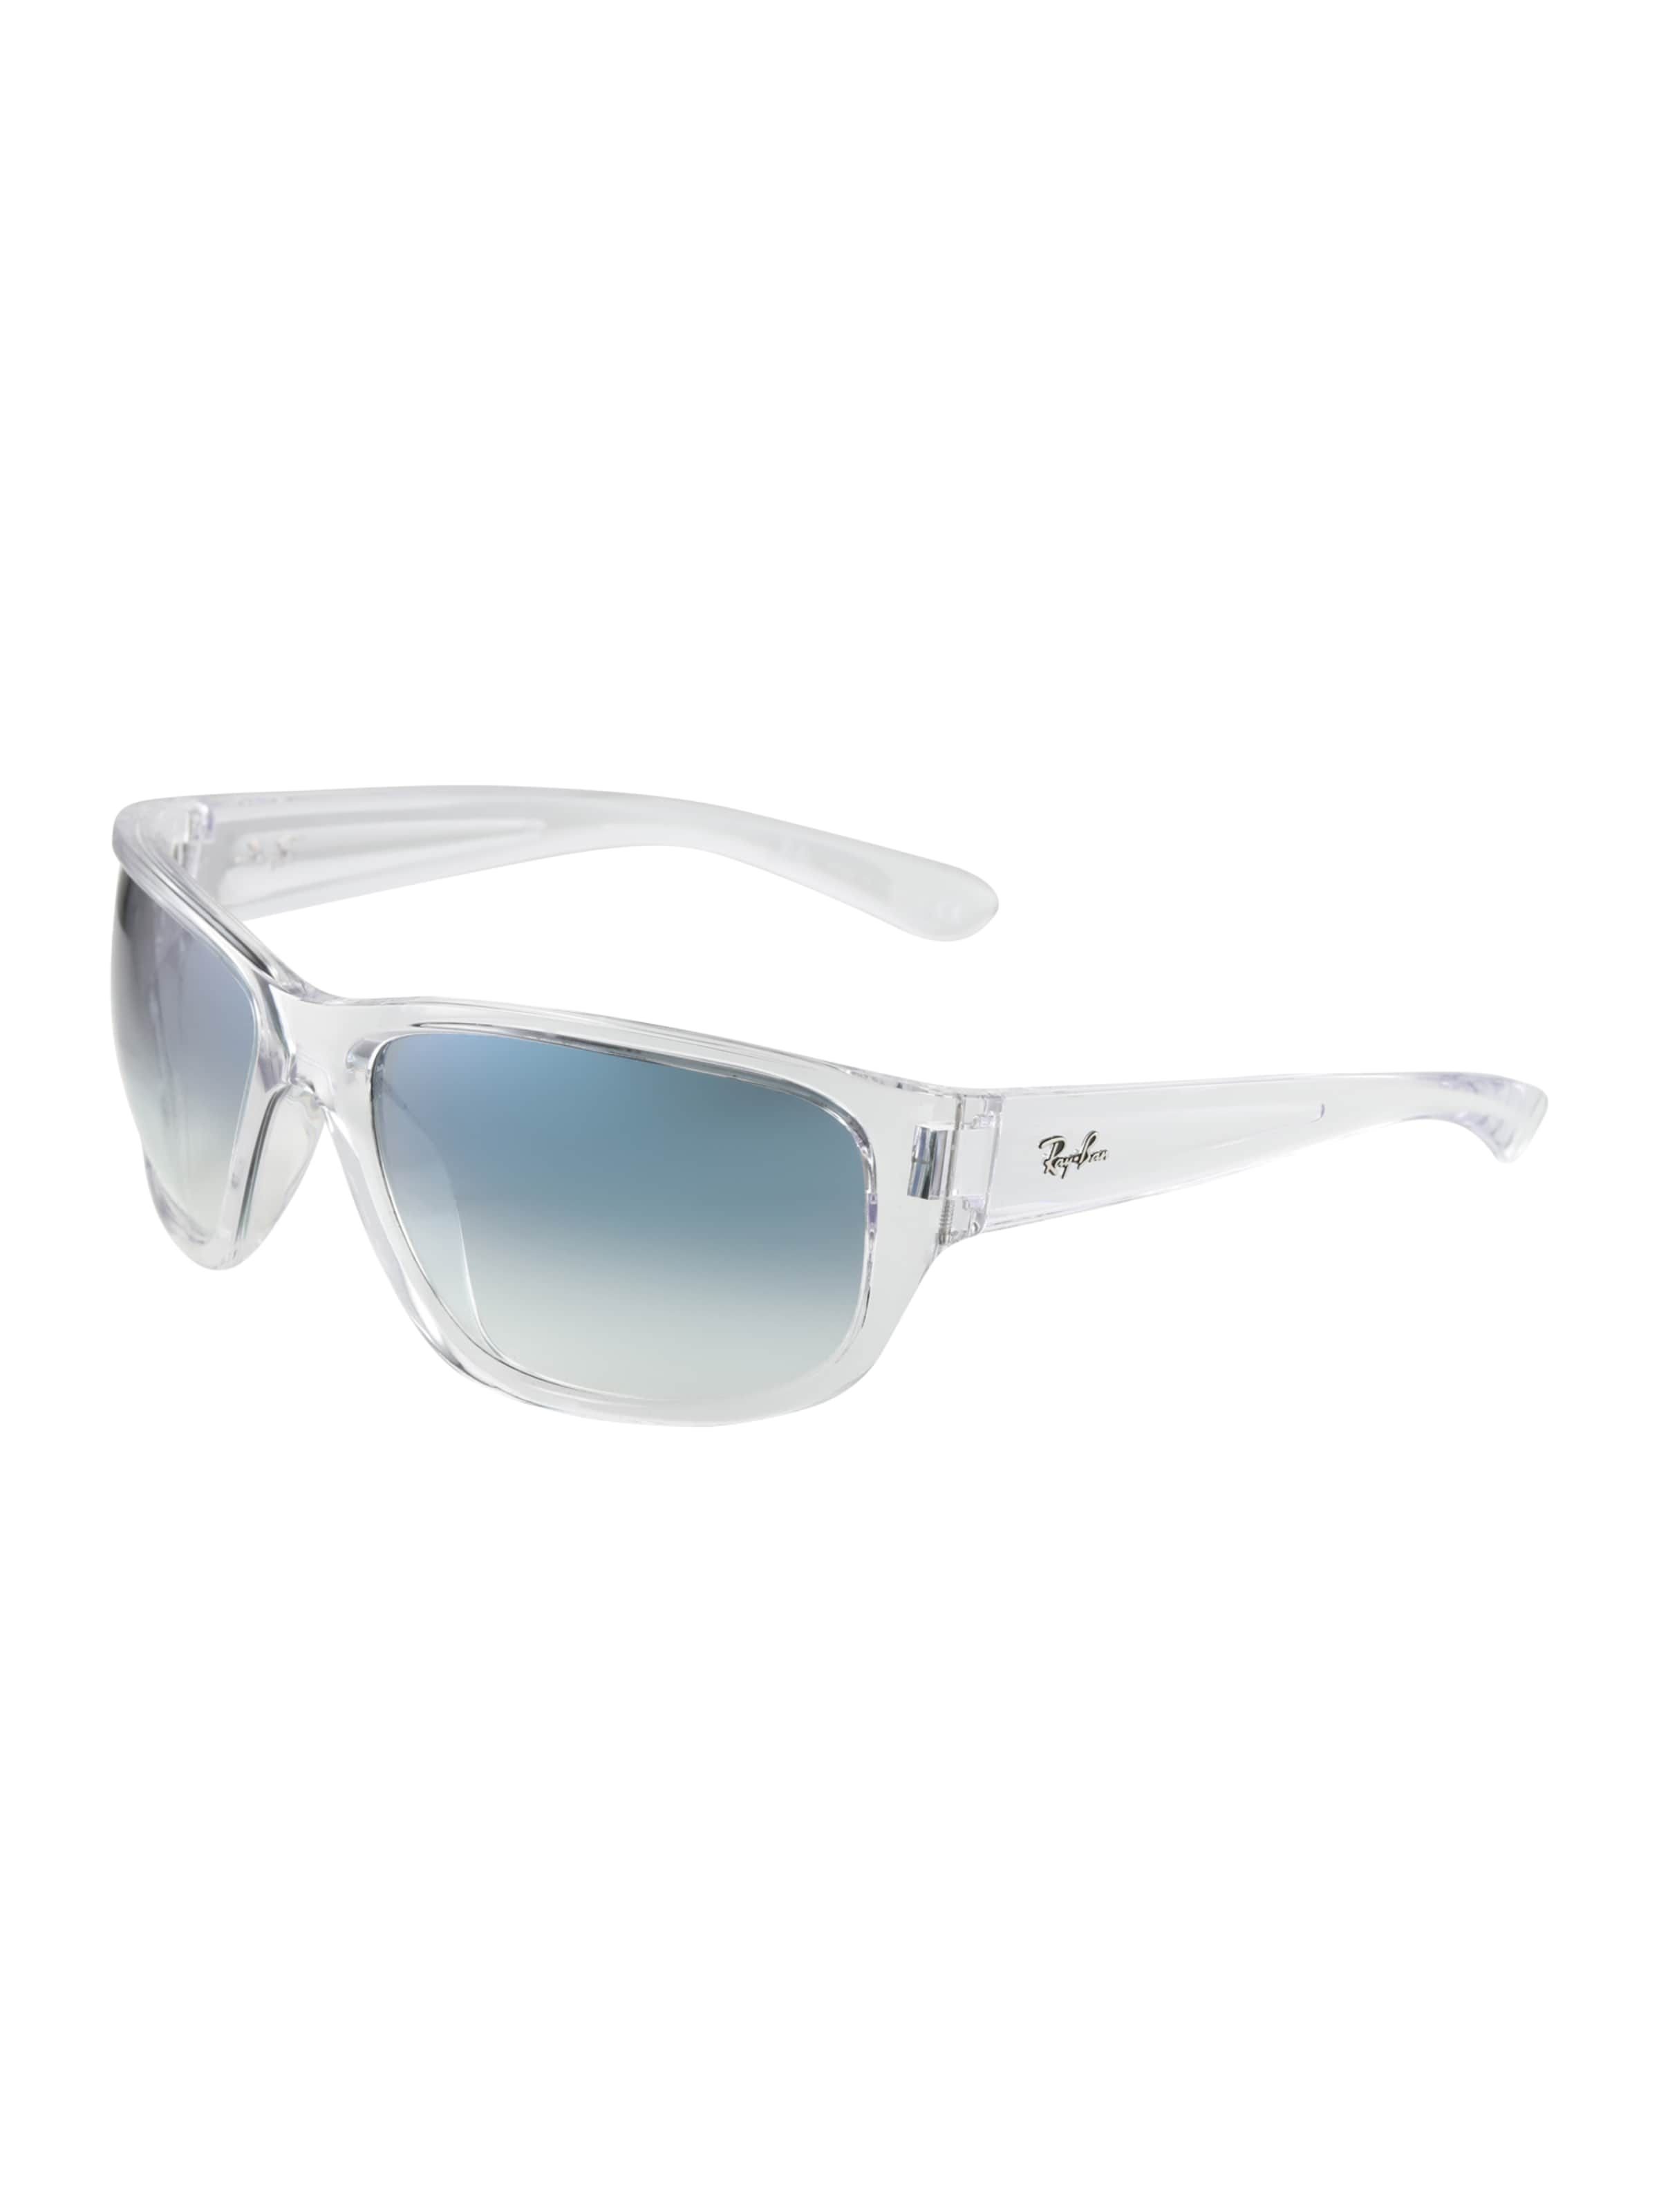 Transparent Ray ban Sonnenbrille Transparent ban Ray Ray Sonnenbrille In In 2IWEDYH9